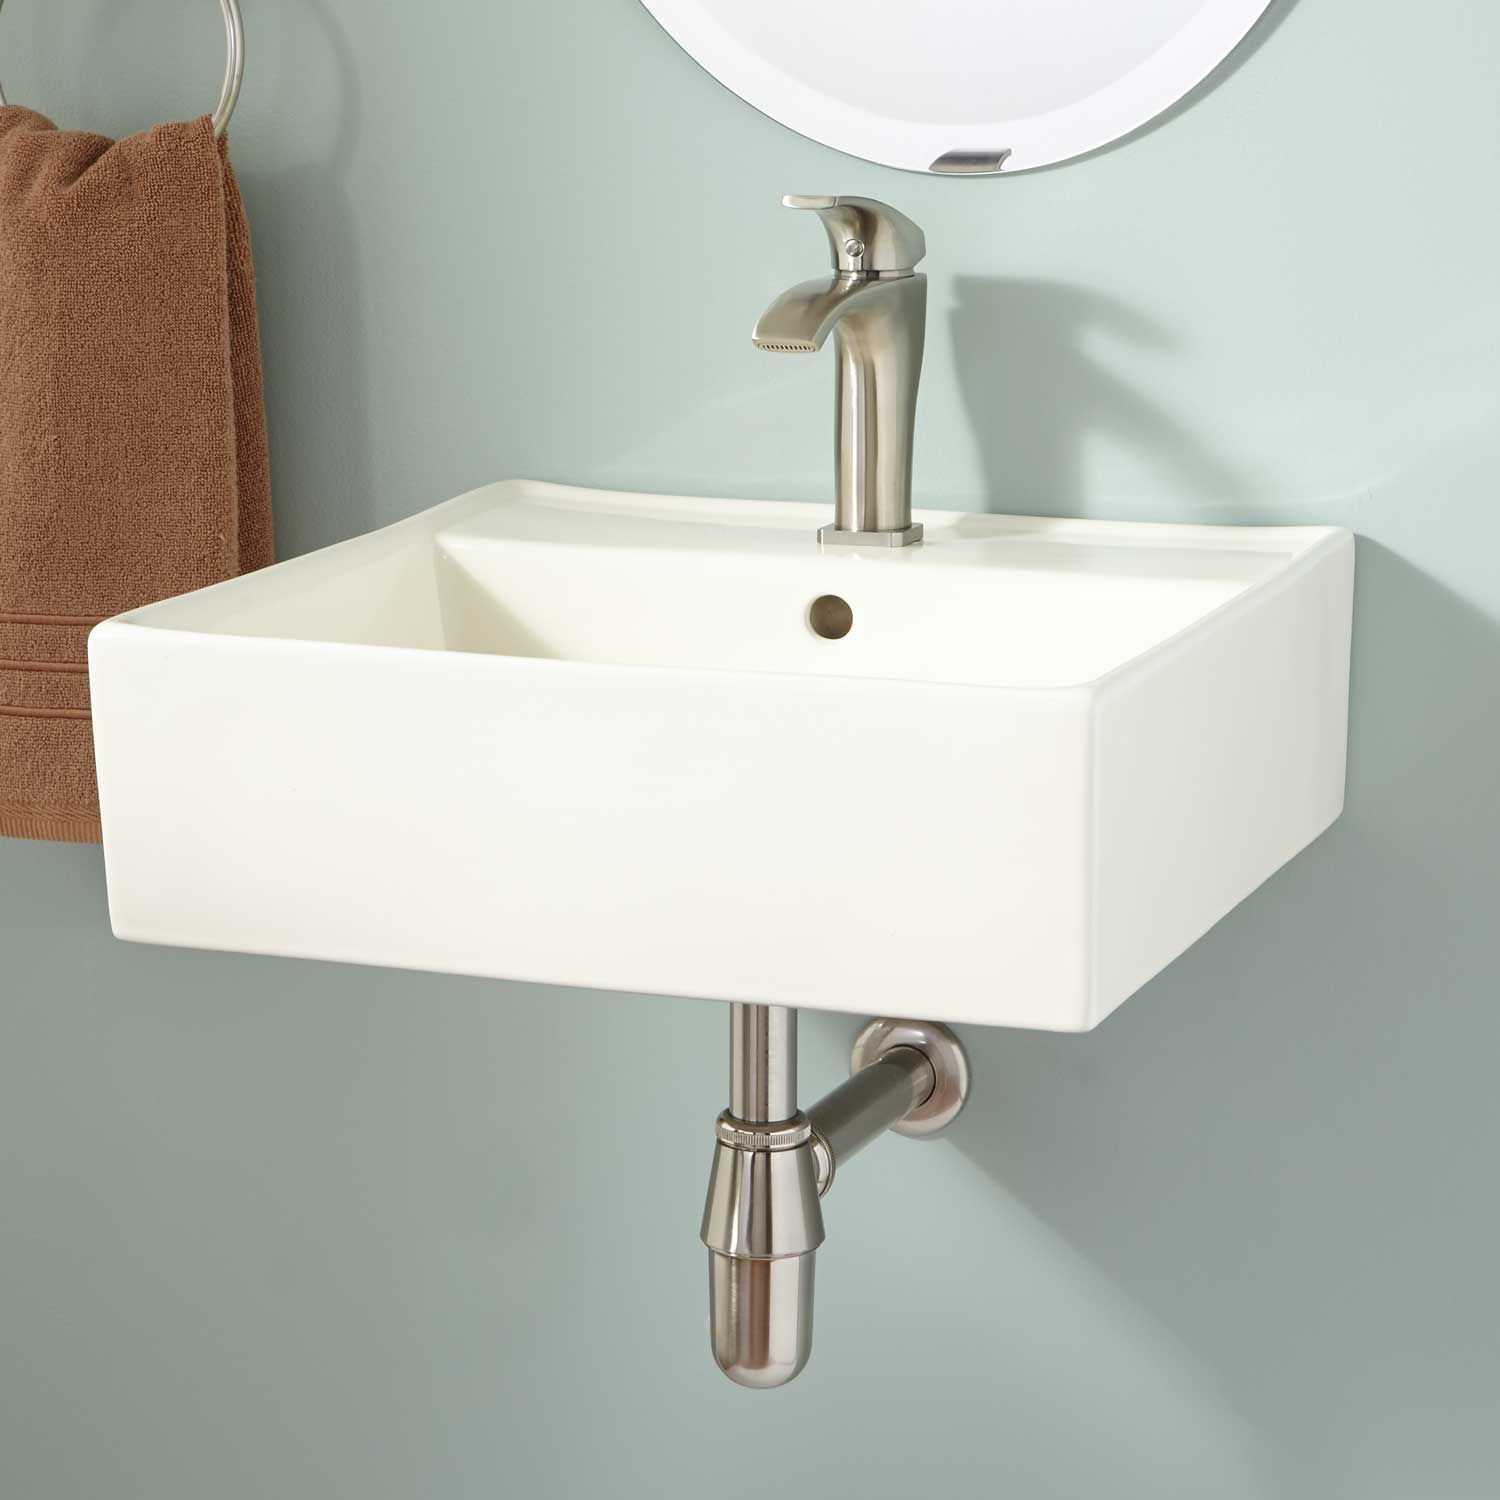 Signature Hardware Audrie Porcelain Wall Mount Bathroom Sink Ebay Wall Mounted Bathroom Sinks Small Bathroom Sinks Farmhouse Bathroom Sink